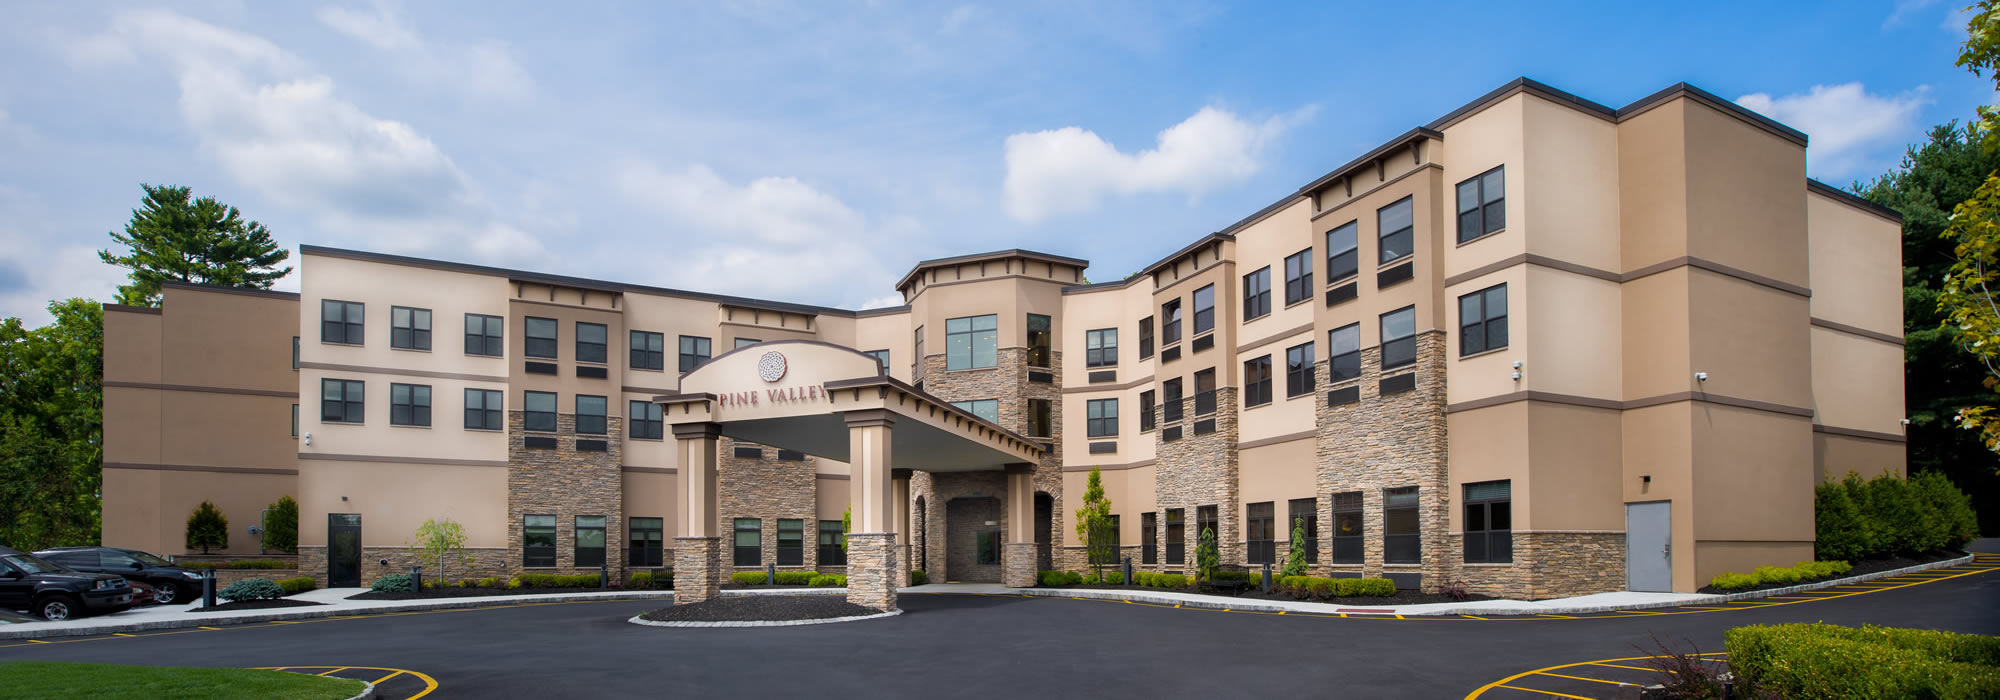 Pine valley rehab center for rehabilitation and nursing for How to build a retirement home